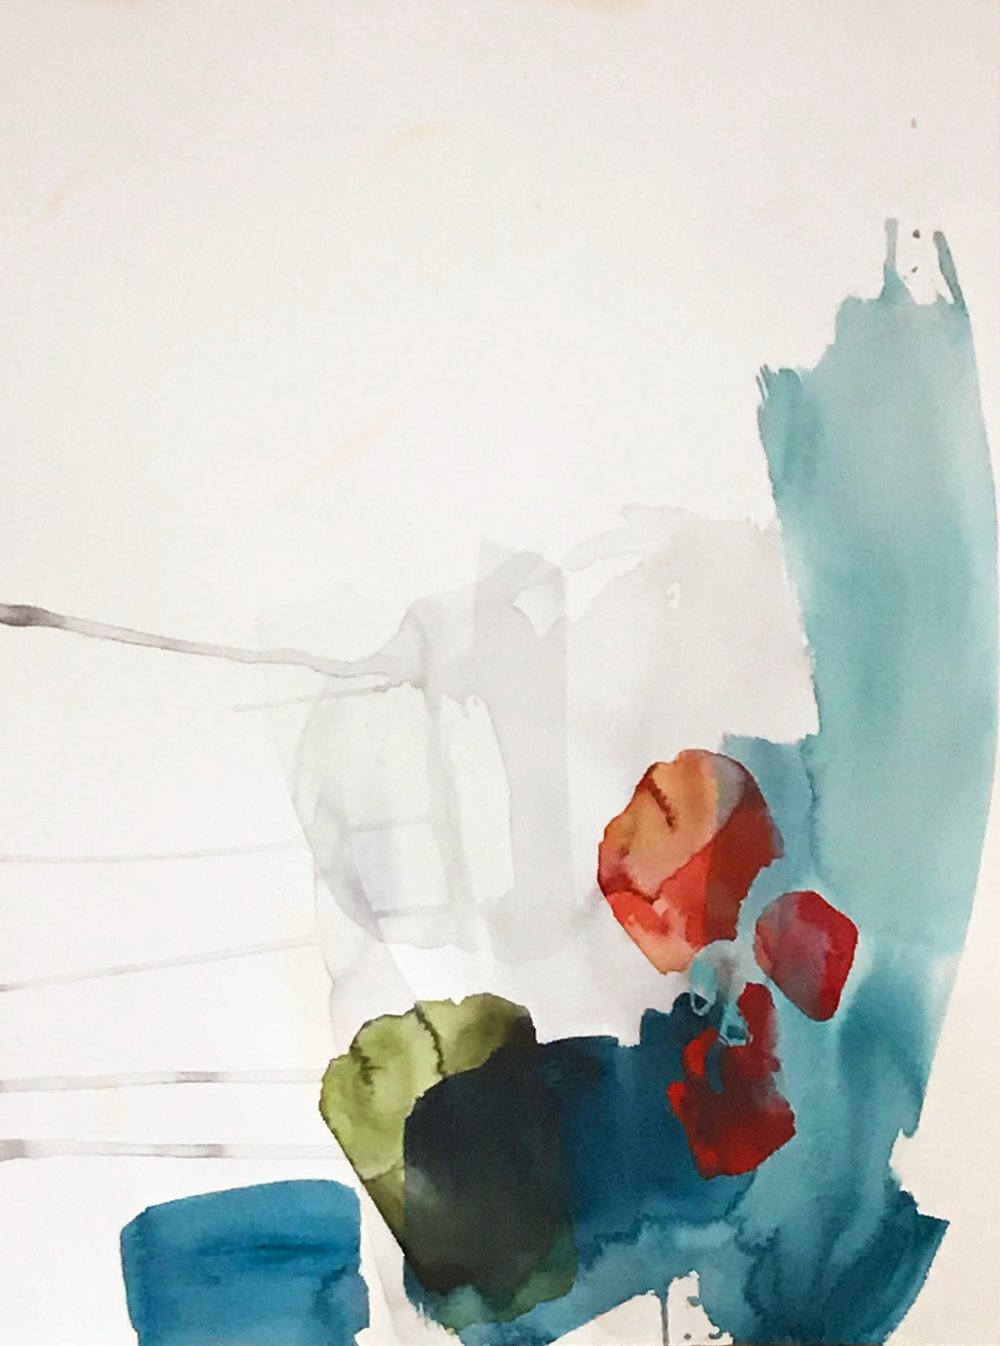 TENDER #2 22 in. x 30 in. acrylic on paper